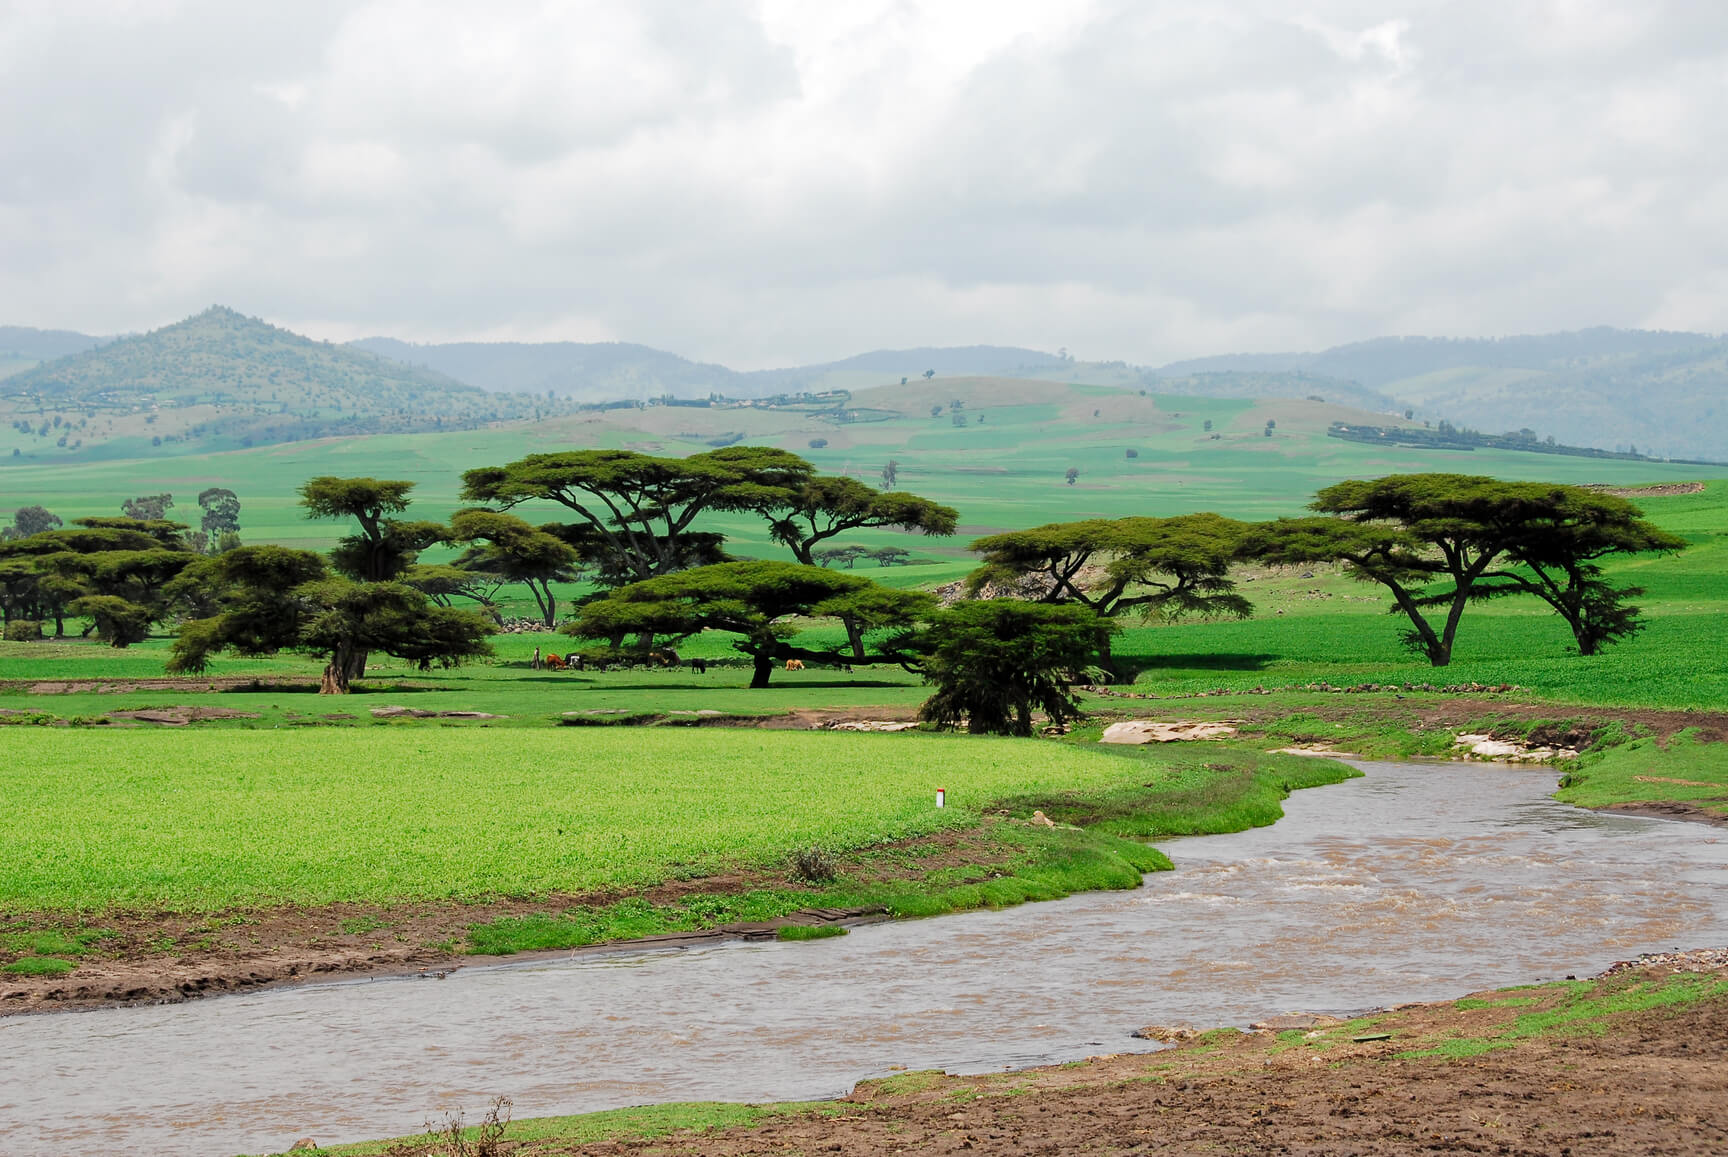 Non-stop from Athens, Greece to Addis Ababa, Ethiopia for only €342 roundtrip (Aug-Nov dates)